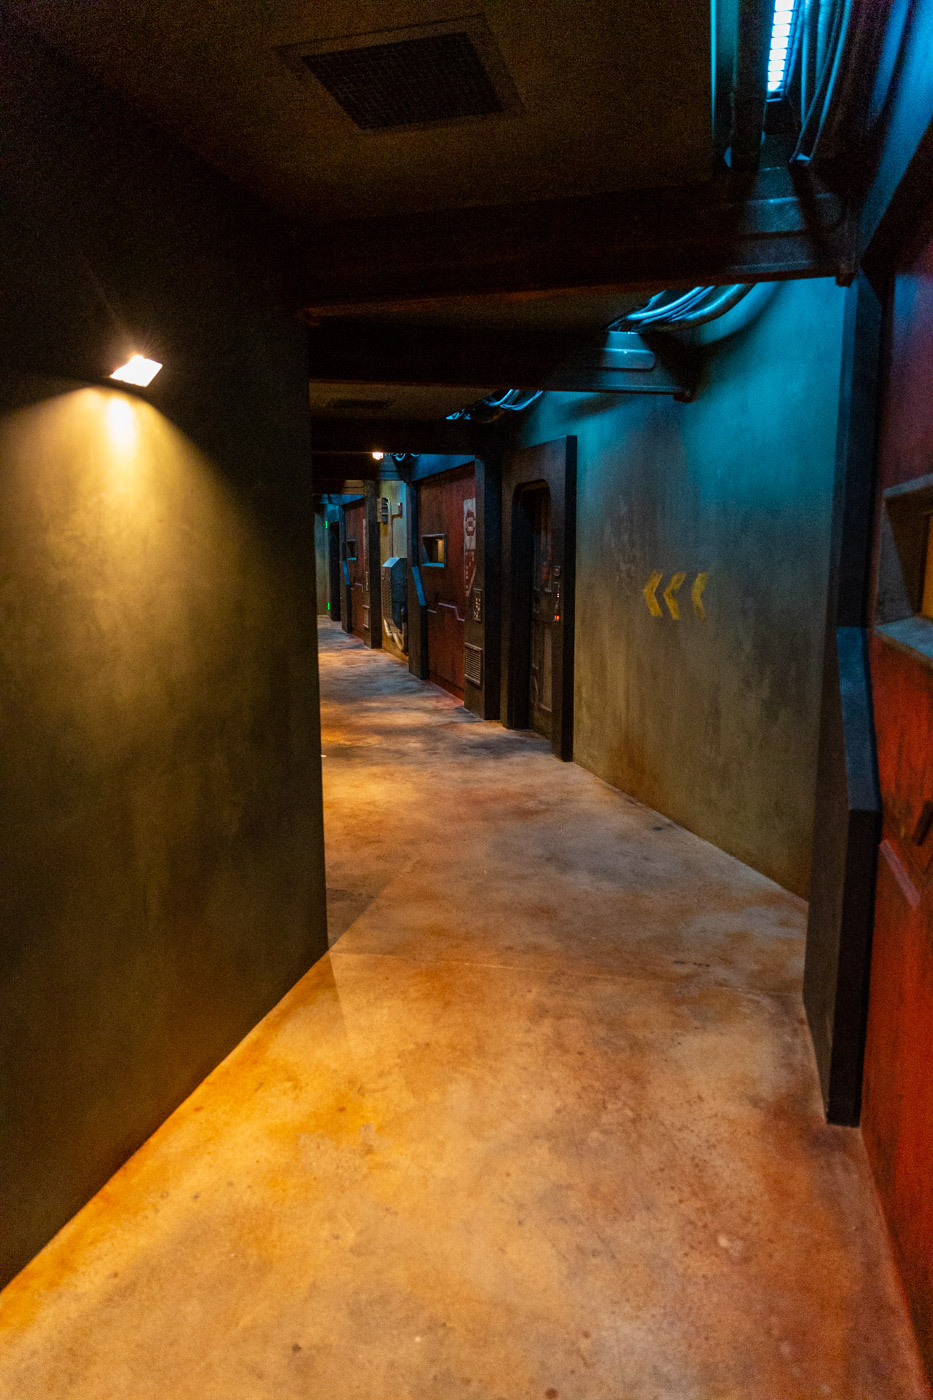 Smuggler's Run Exit tunnel inside Star Wars Land at Disneyland. Galaxy's Edge at Disneyland.